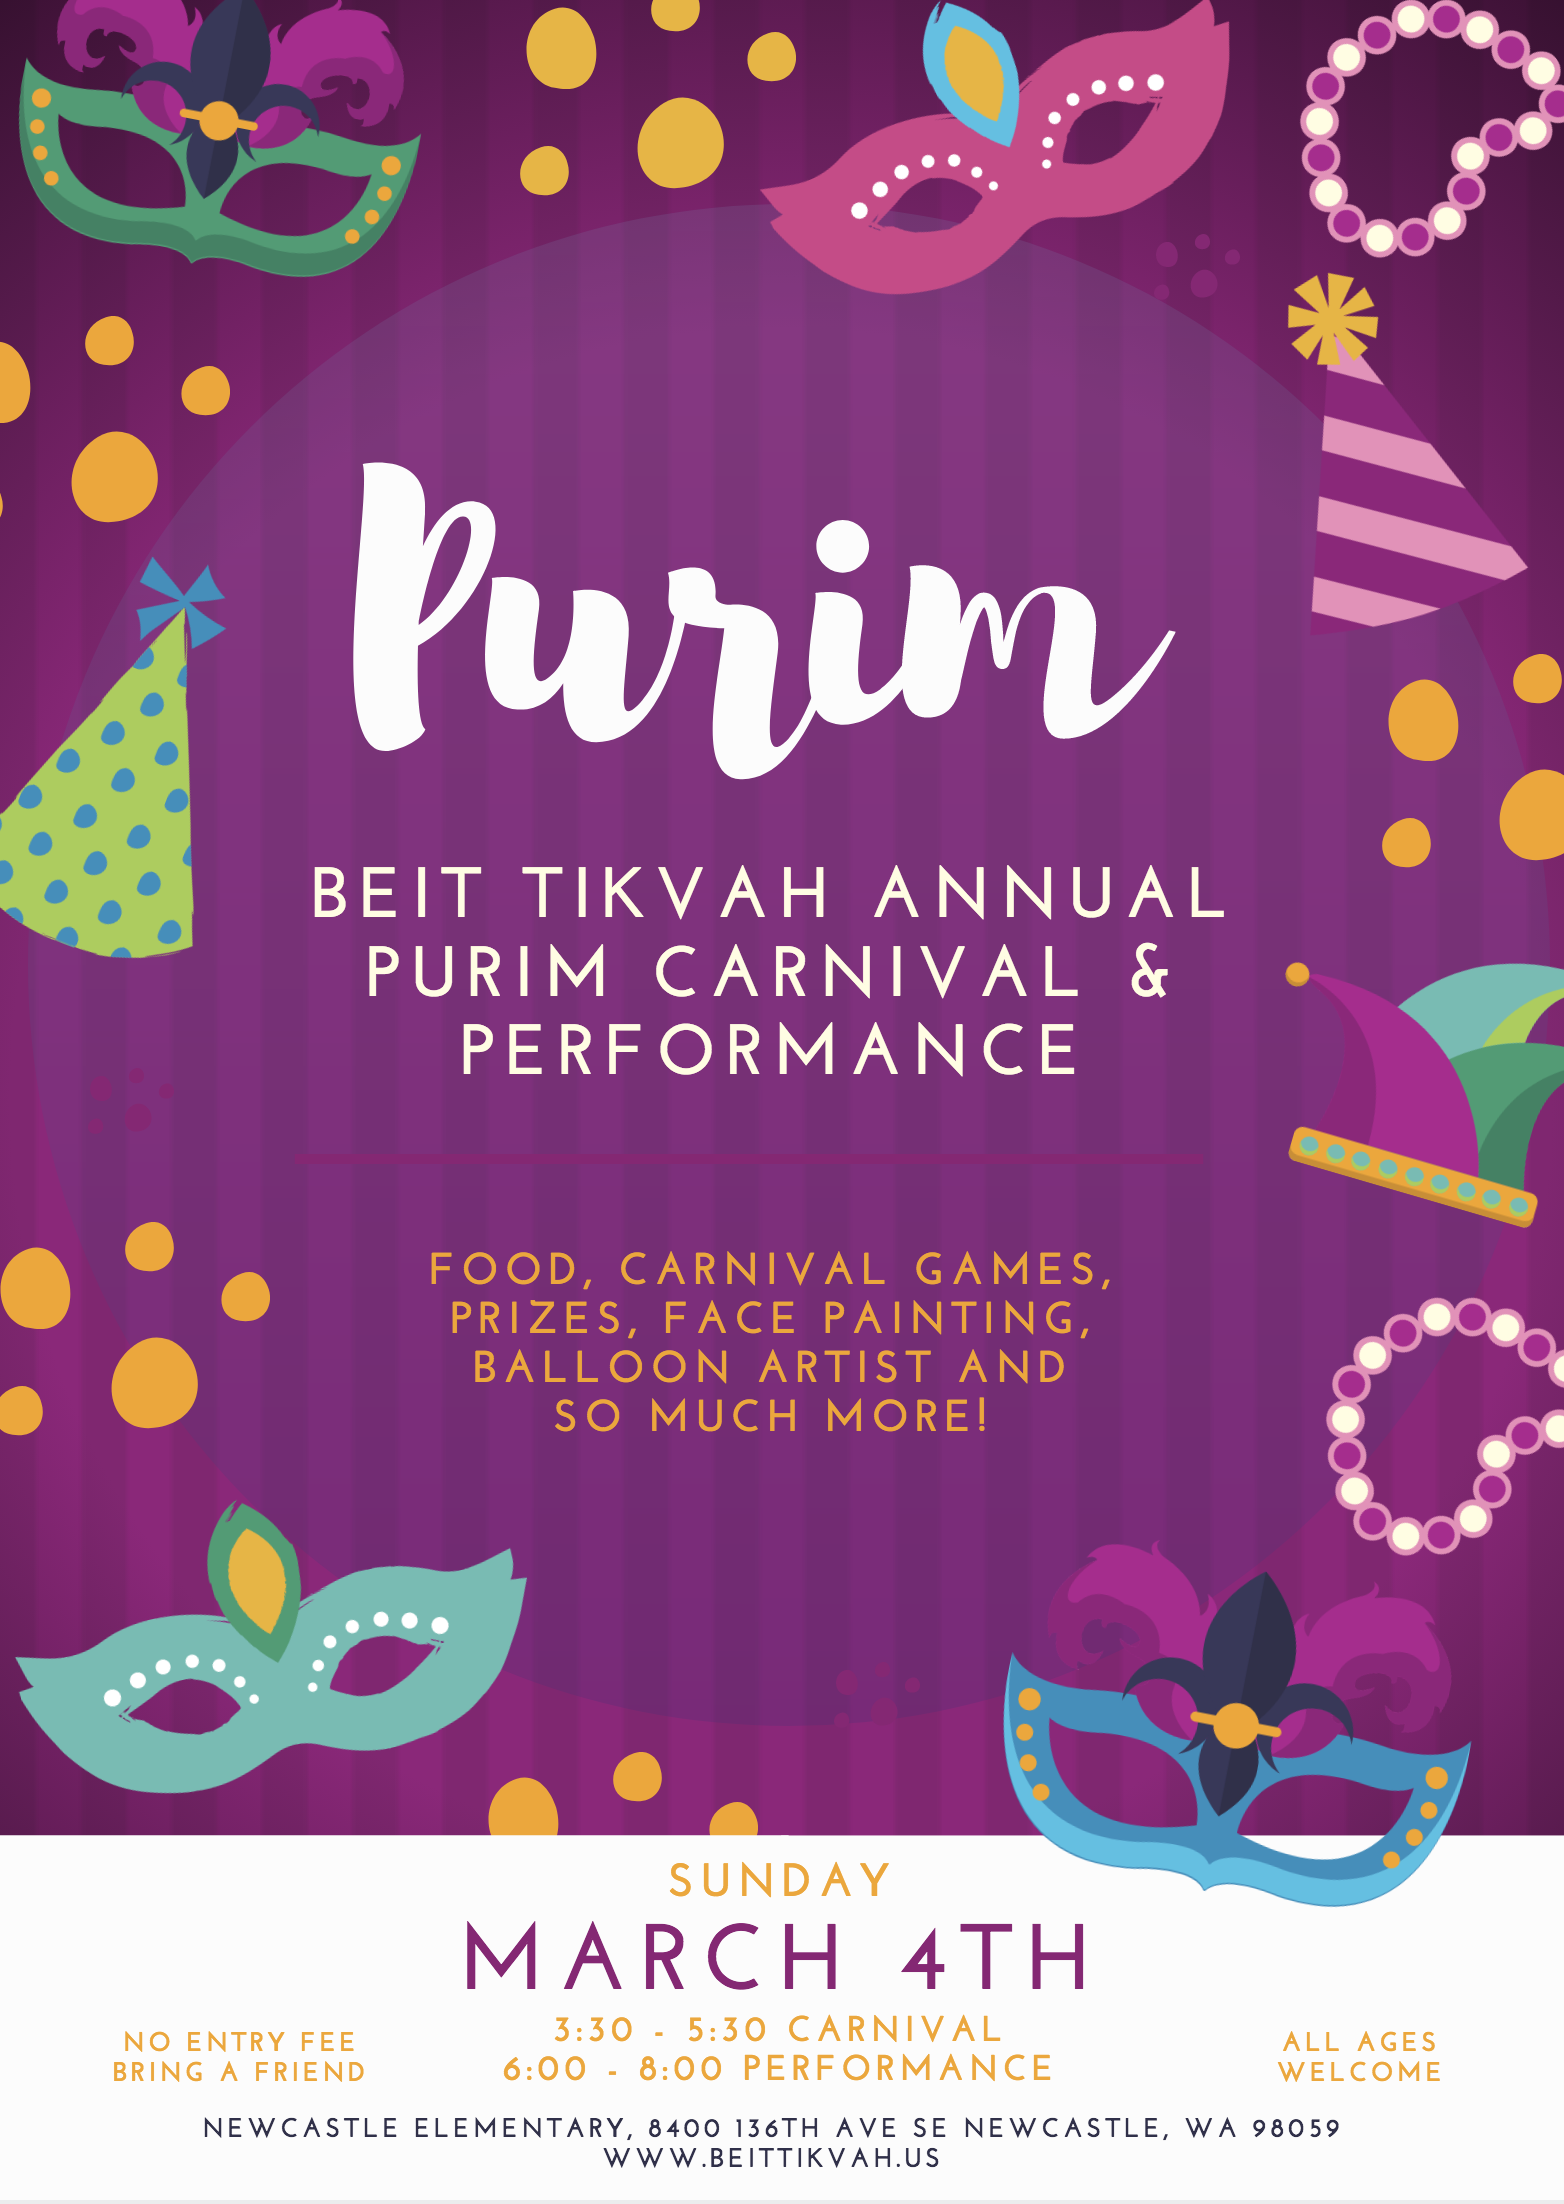 poster advertising Purim Carnival 2018